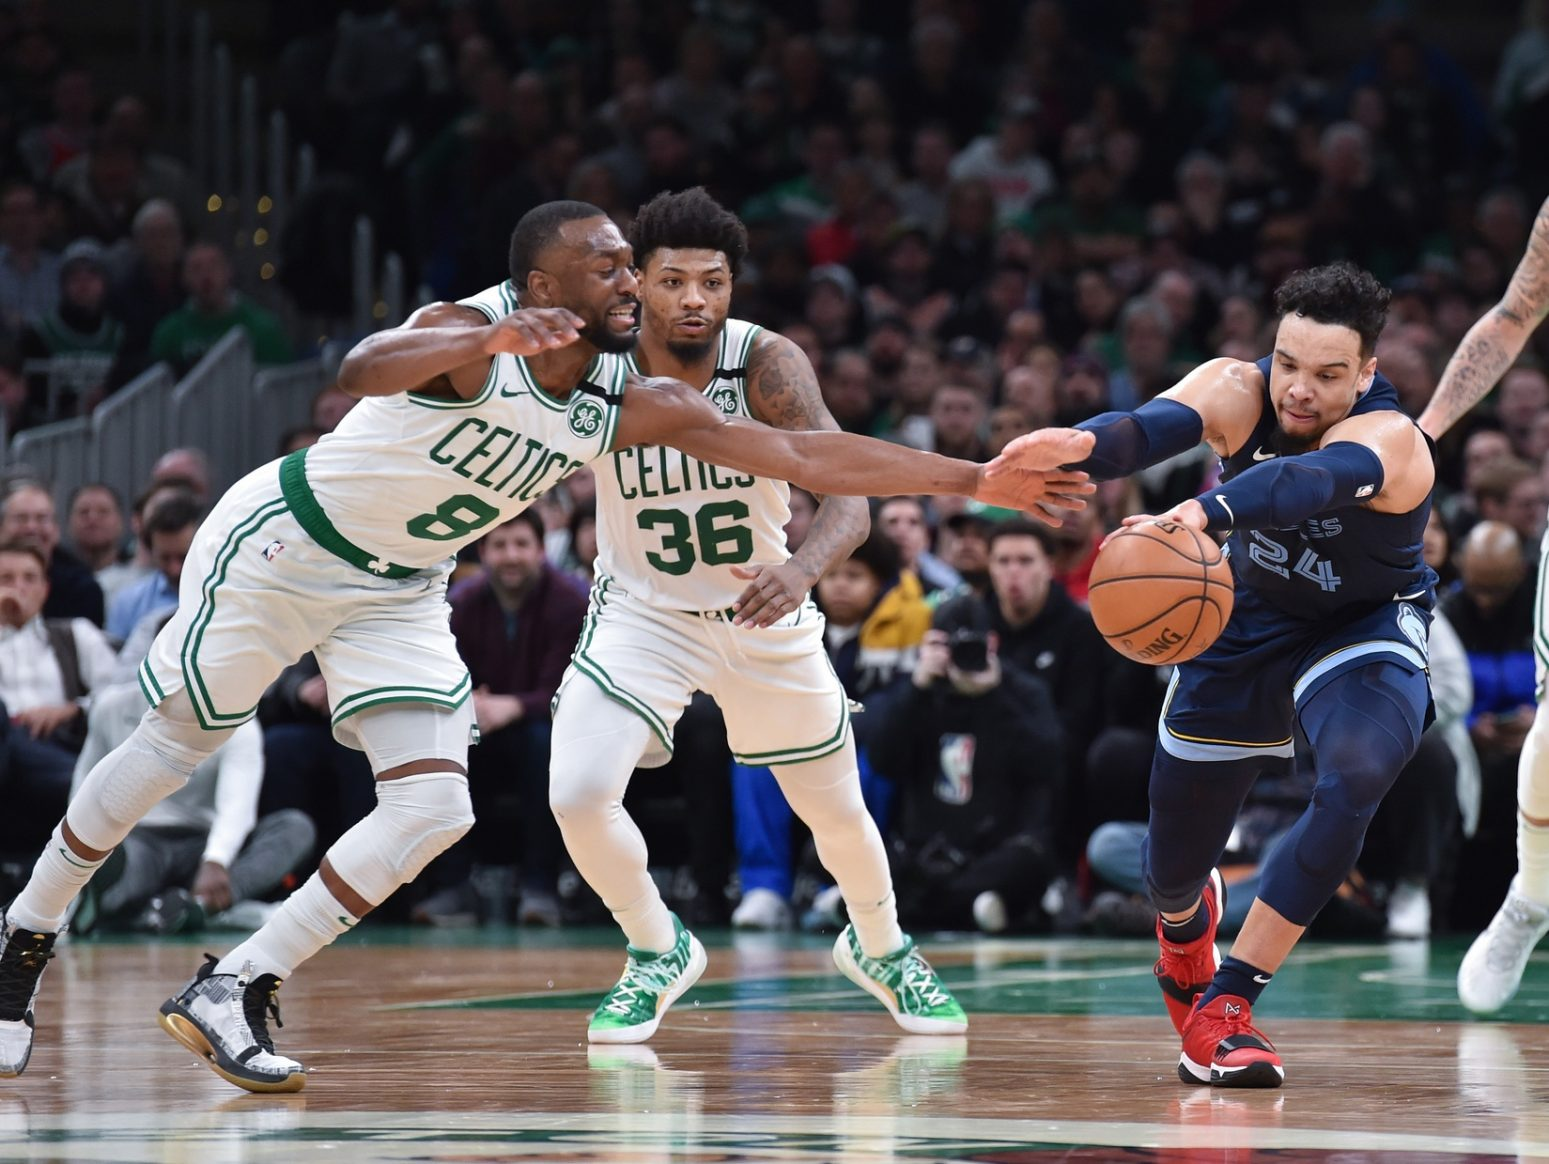 Five rational thoughts following the Celtics' dominant win over the Grizzlies